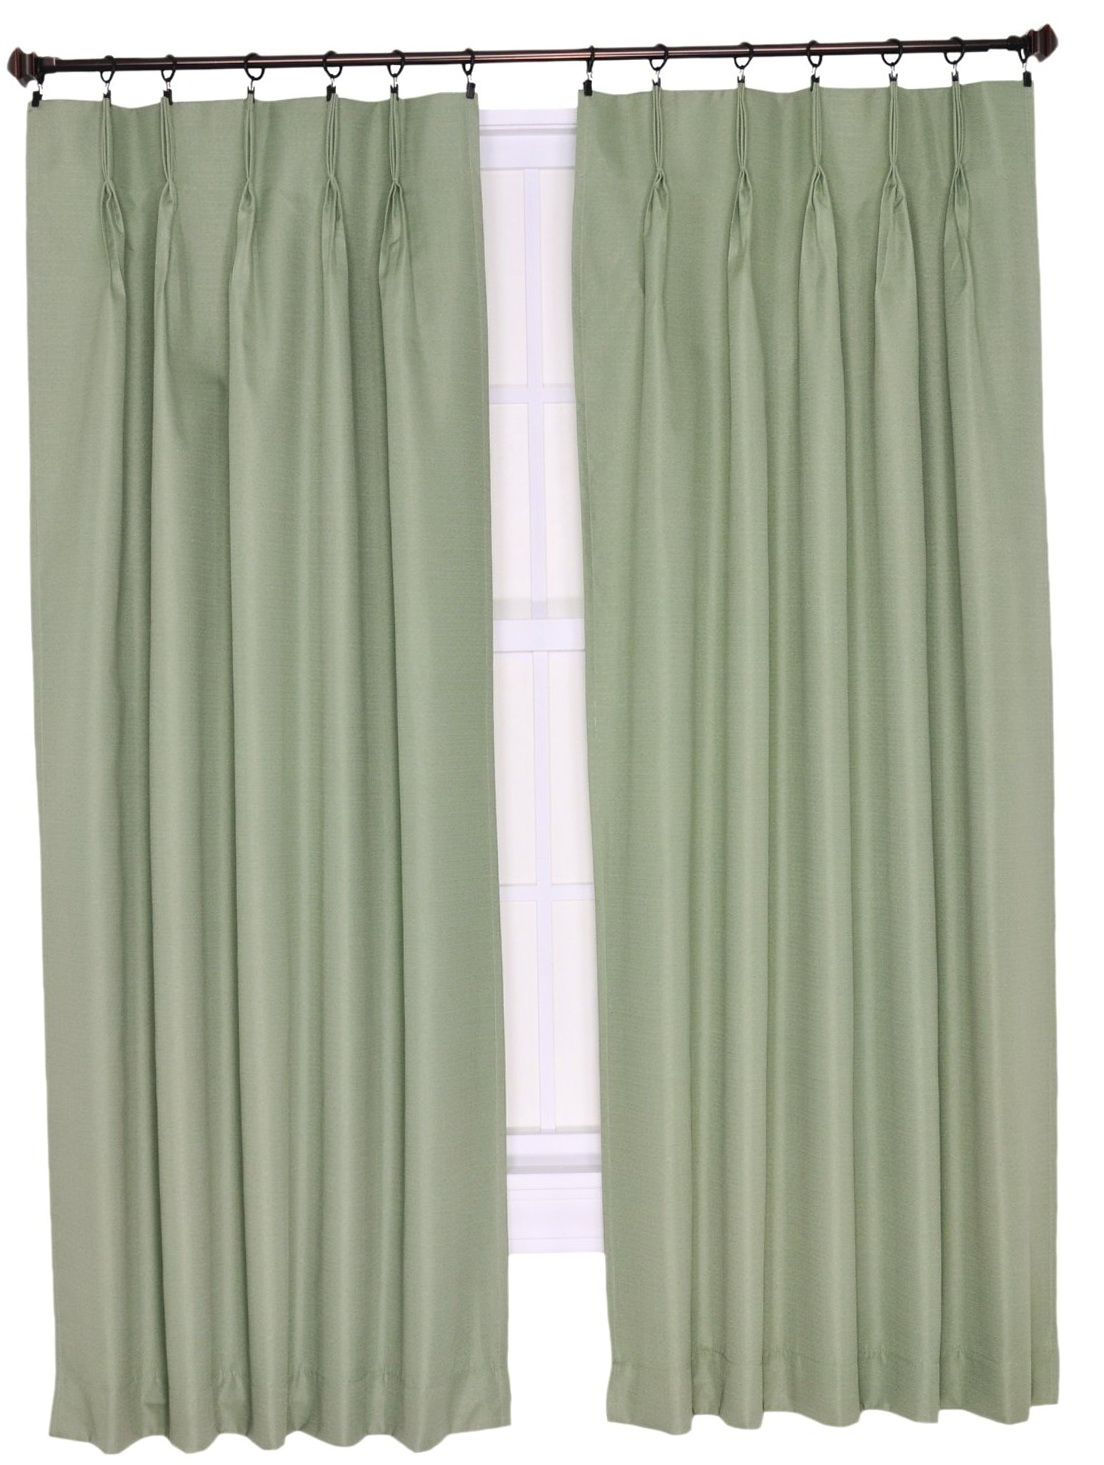 84 Inch Curtains Walmart